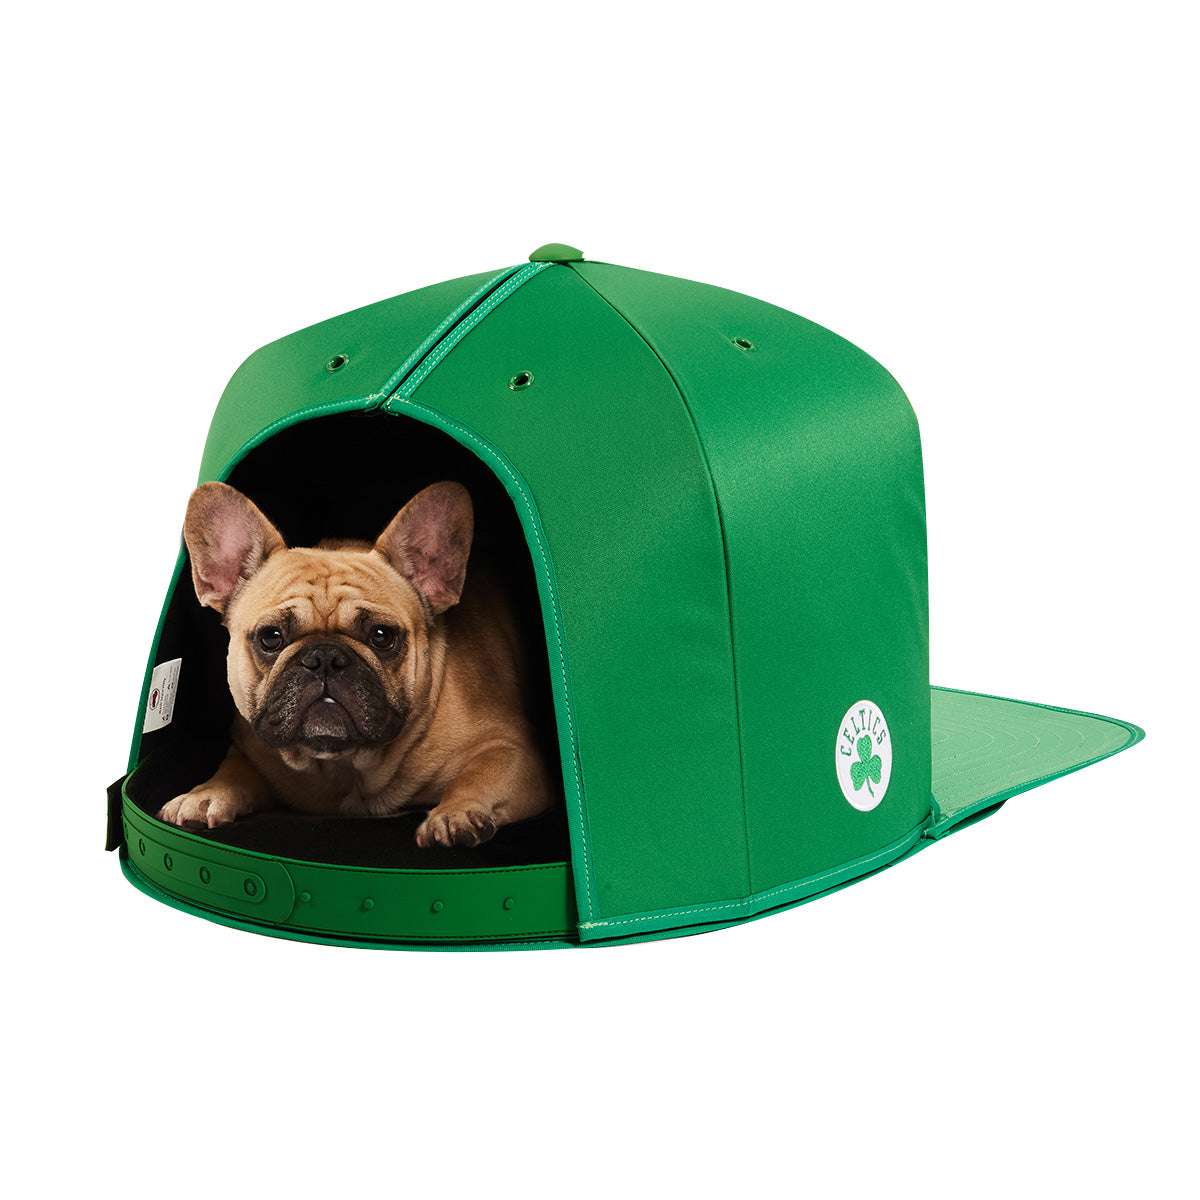 Nap Cap - NBA - Boston Celtics - Pet Bed